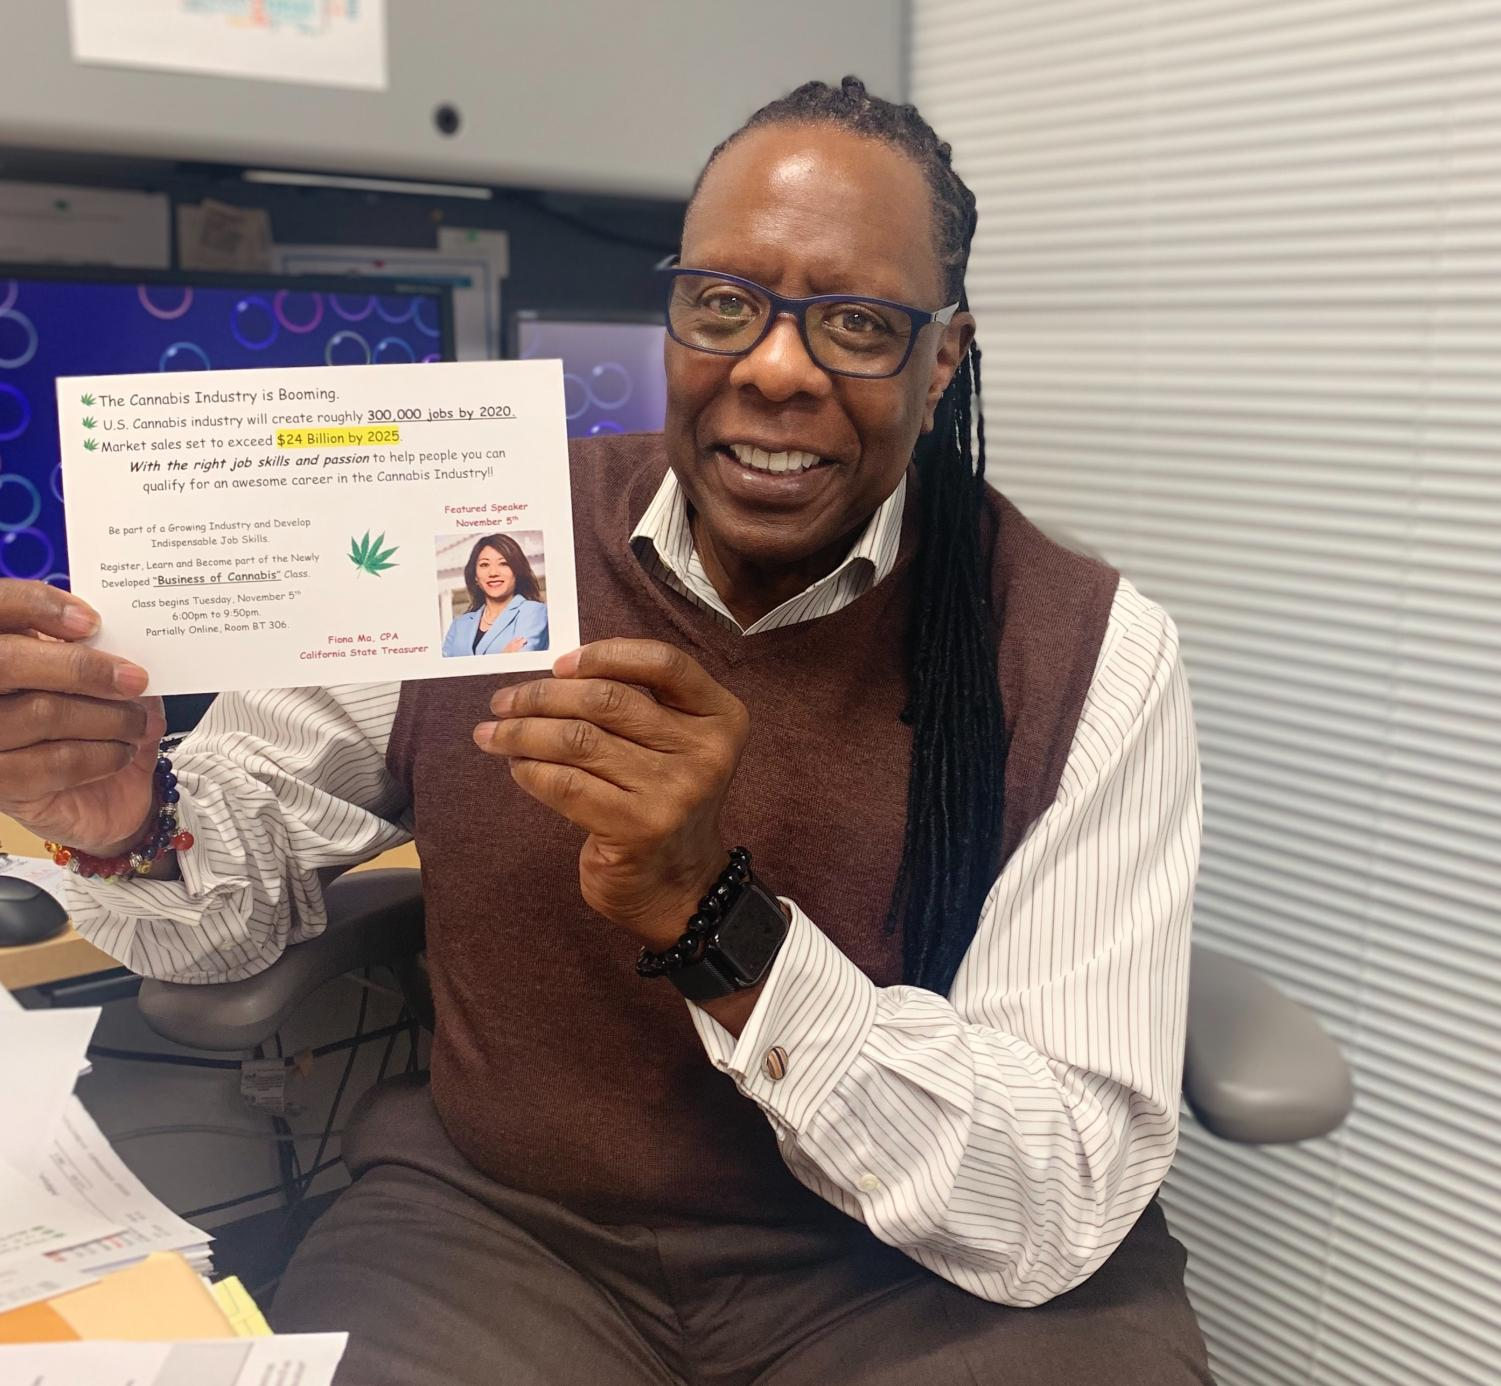 Dr. Leroy Brady displays a flier for the new Business of Cannabis course. Photo by Jade Benn.